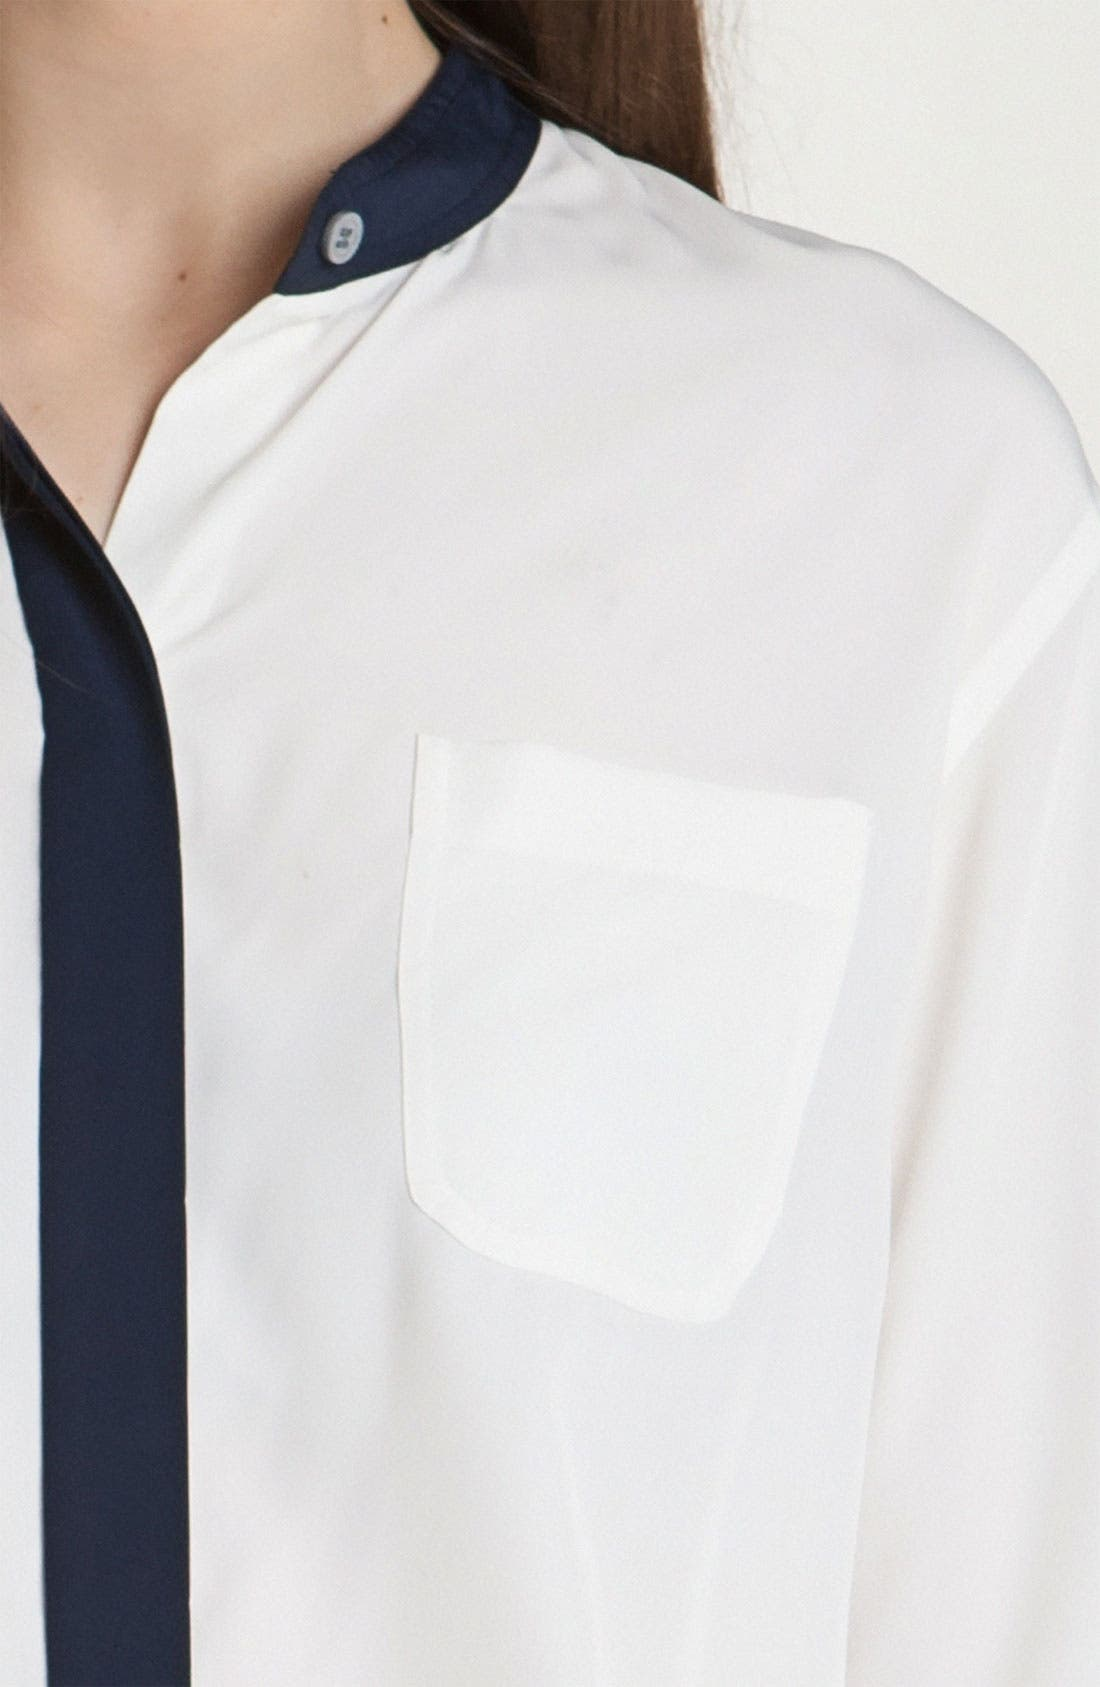 Alternate Image 3  - Vince Camuto Stand Collar Shirt with Contrast Trim (Petite)